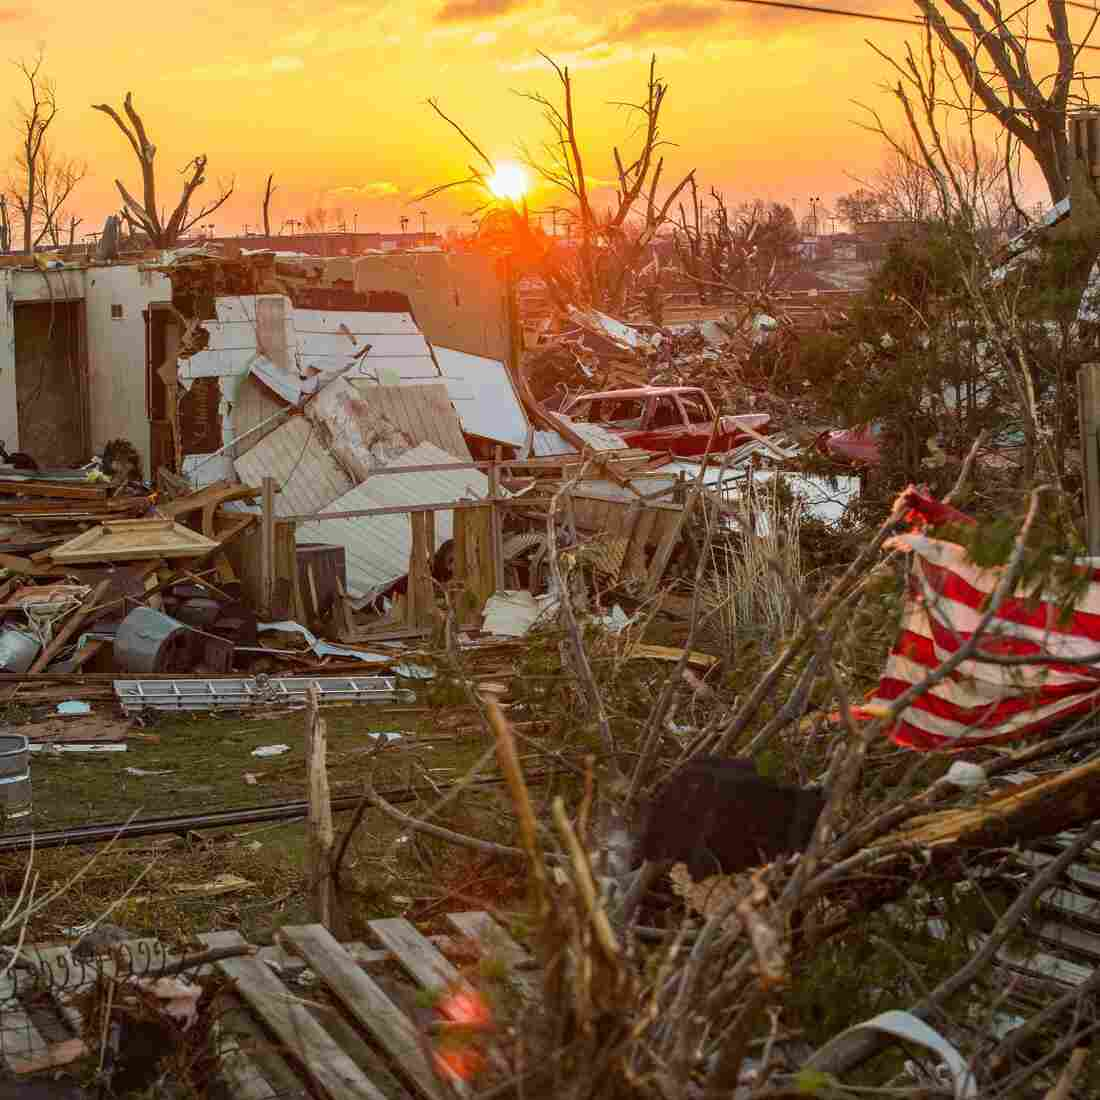 Washington, Ill., sits in ruins as the sun rises Monday, a day after a severe tornado tore through the community.